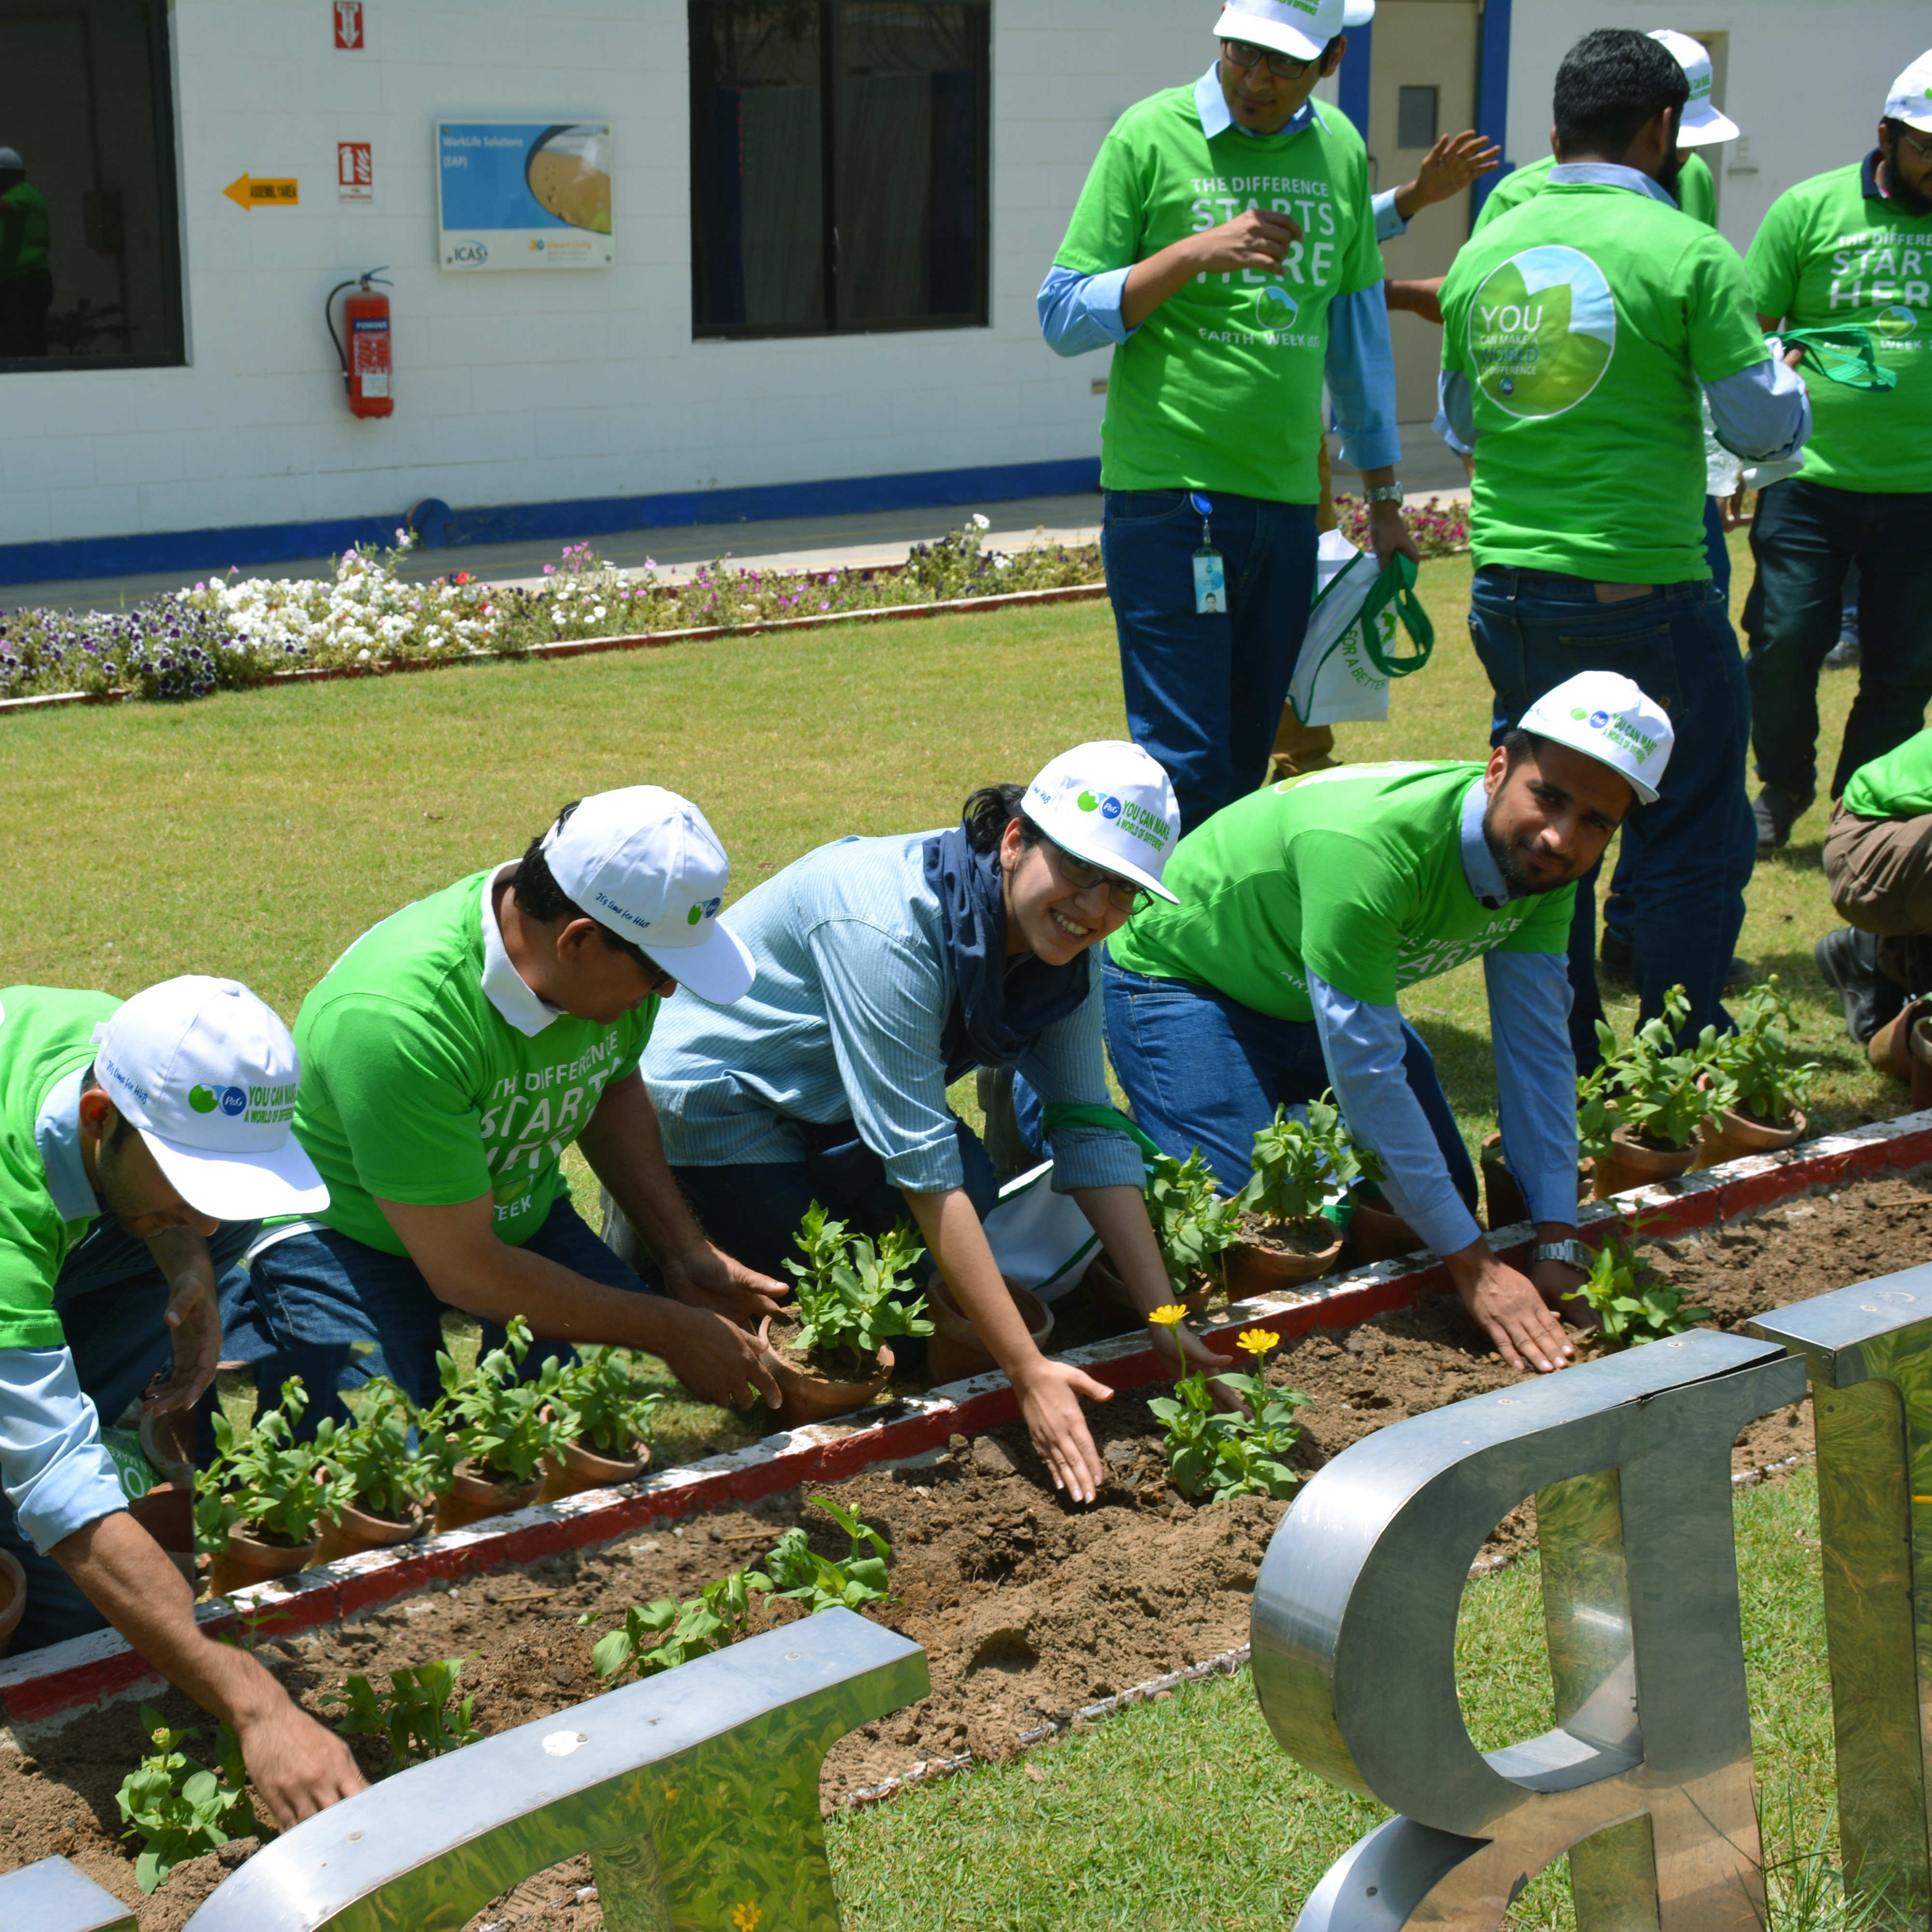 Workers planting